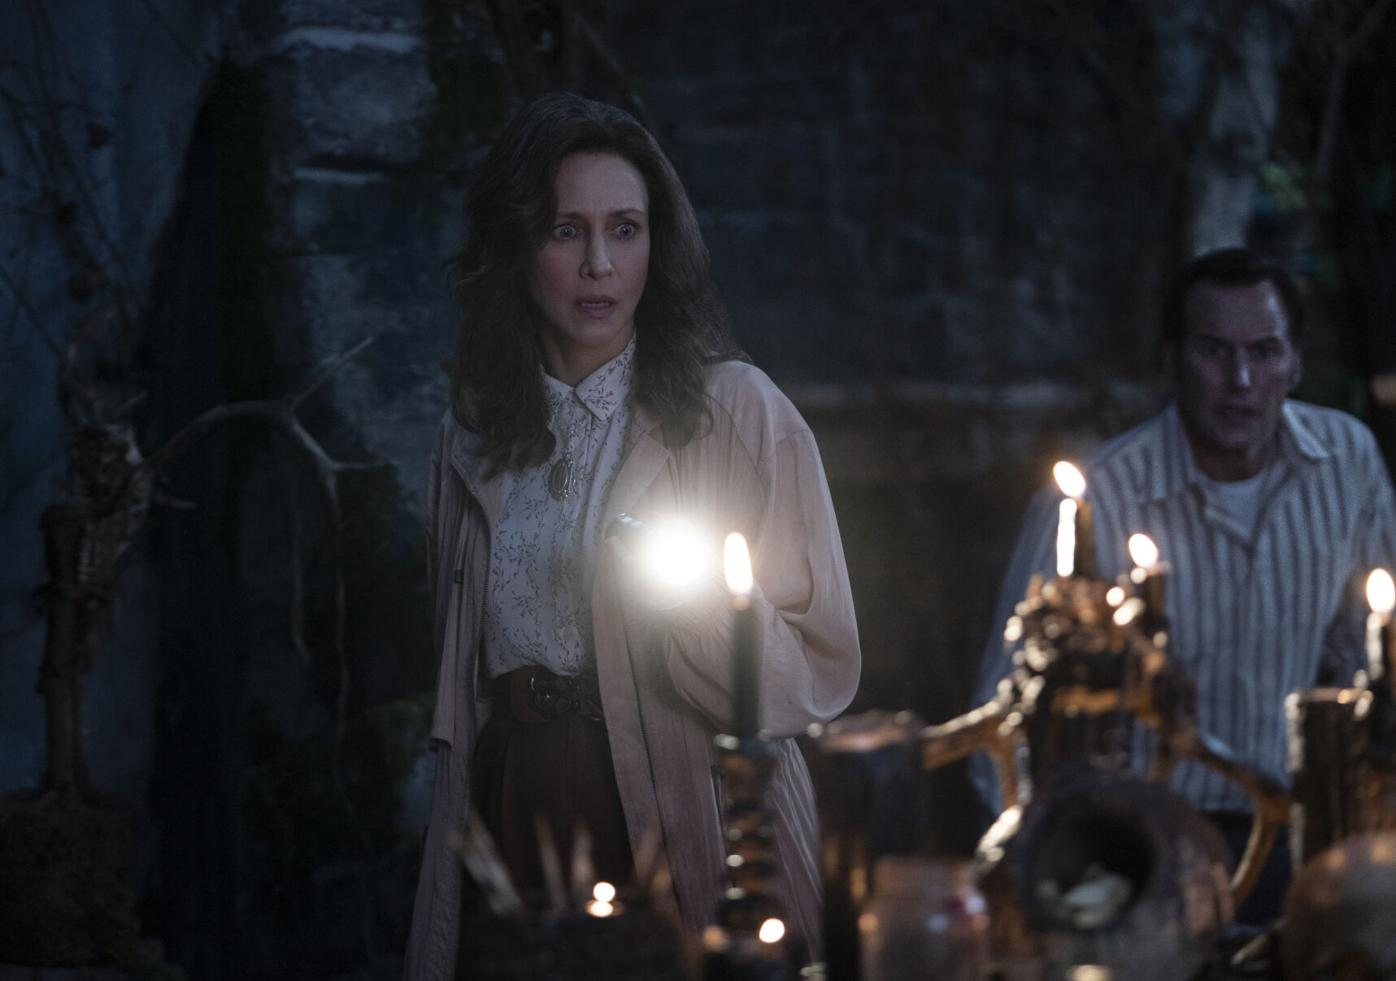 Film Review - The Conjuring: The Devil Made Me Do It